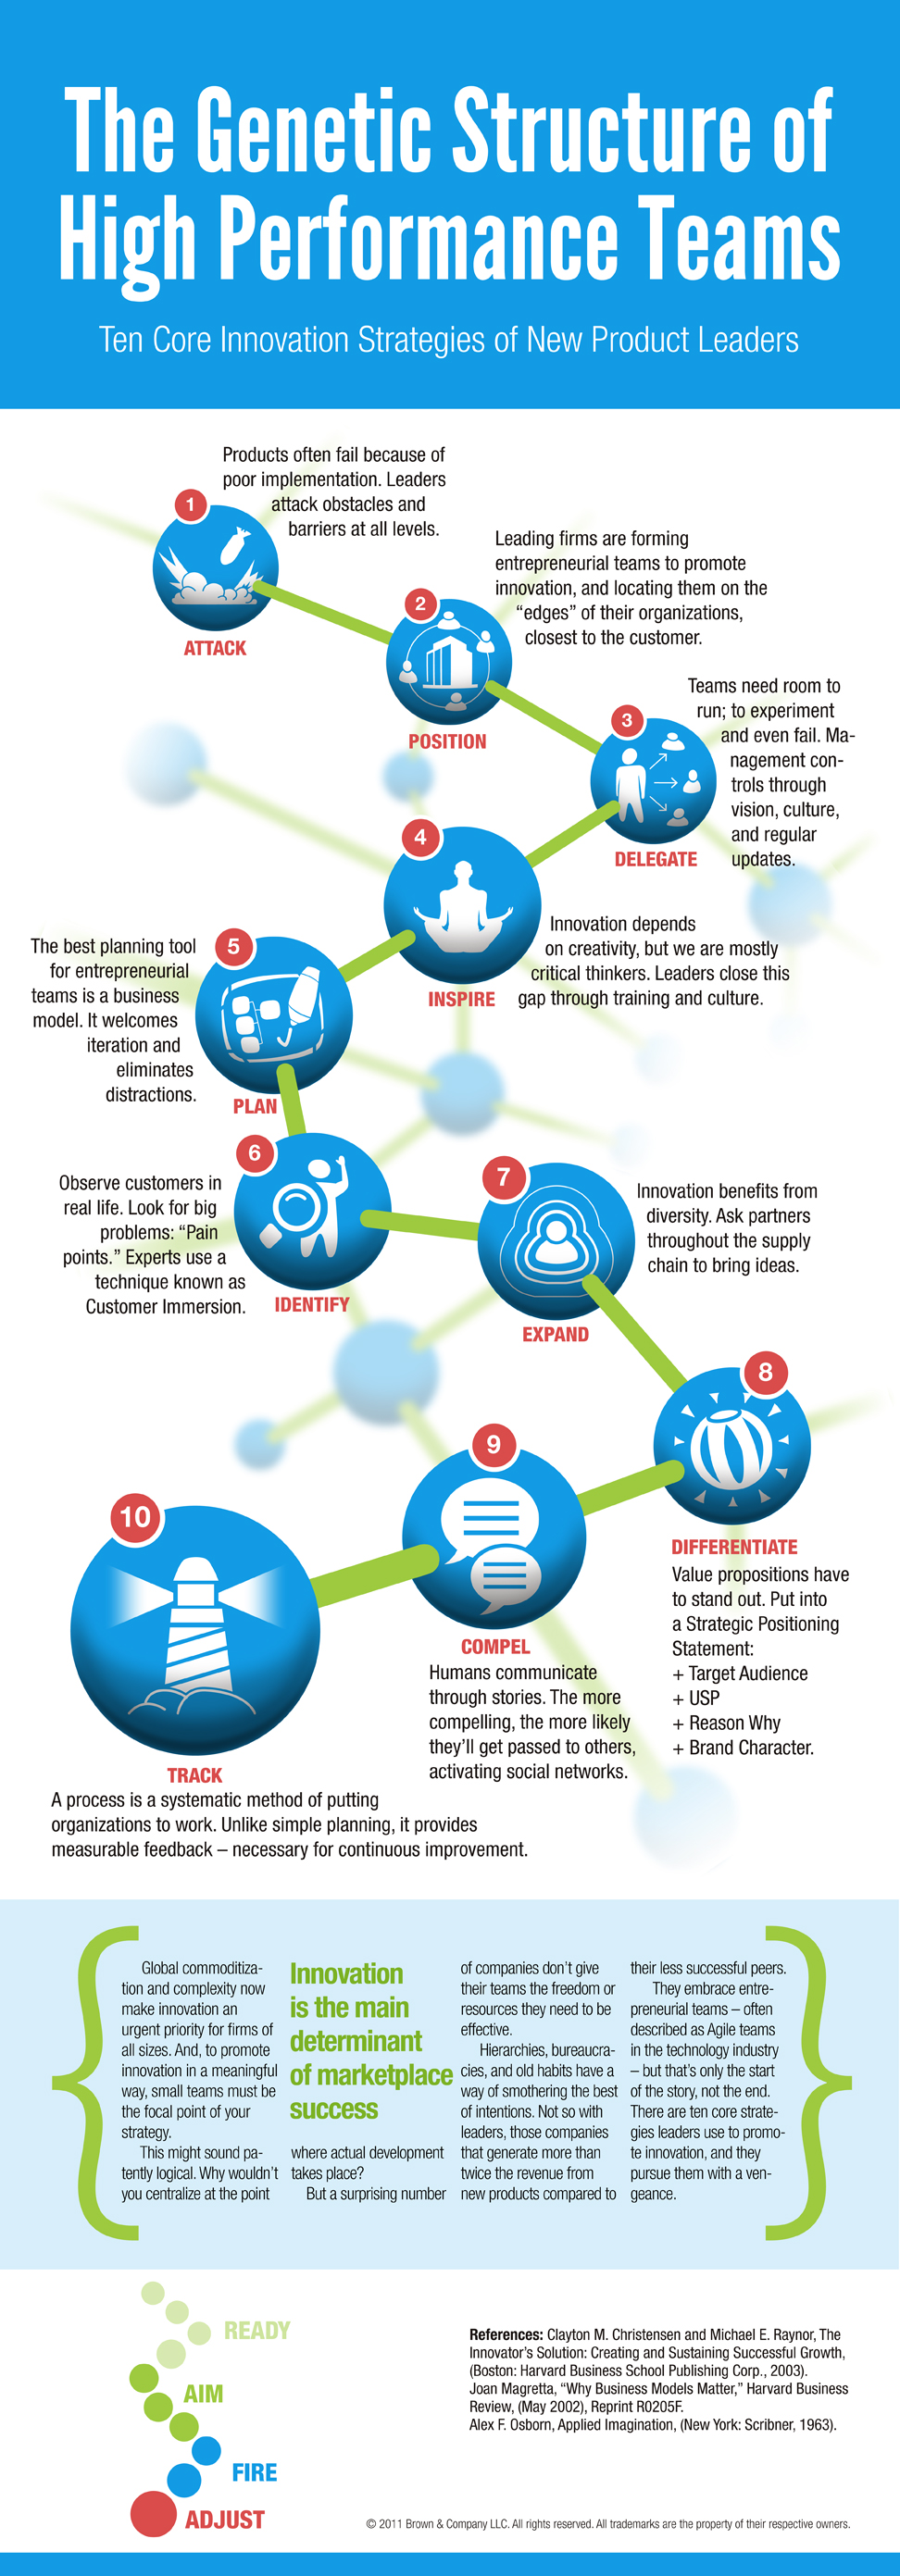 Genetic Structure of High-Performance Teams infographic